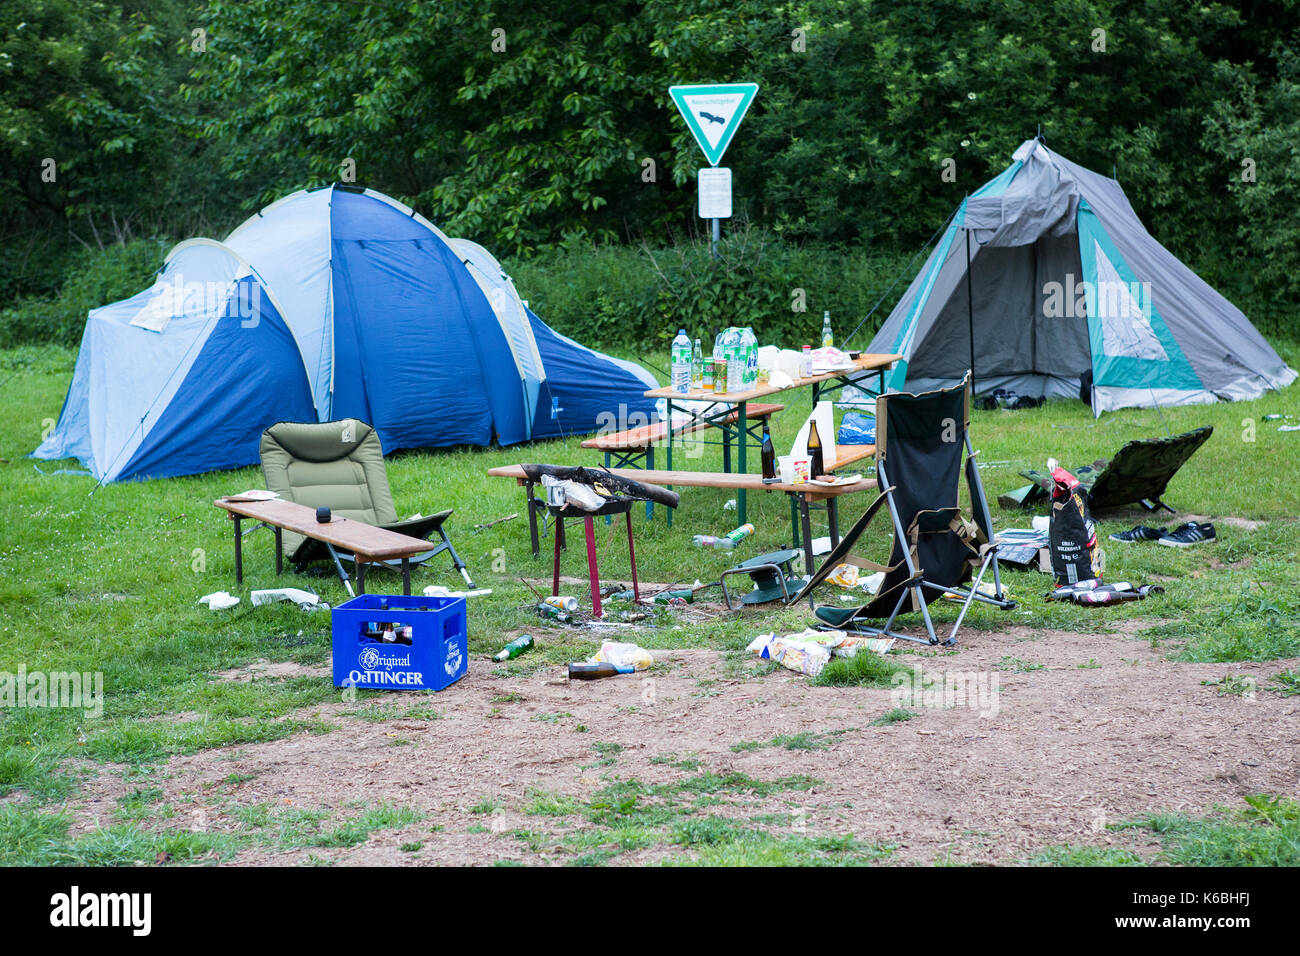 Campsite with tents left in complete mess / debris strewn after party - Stock Image